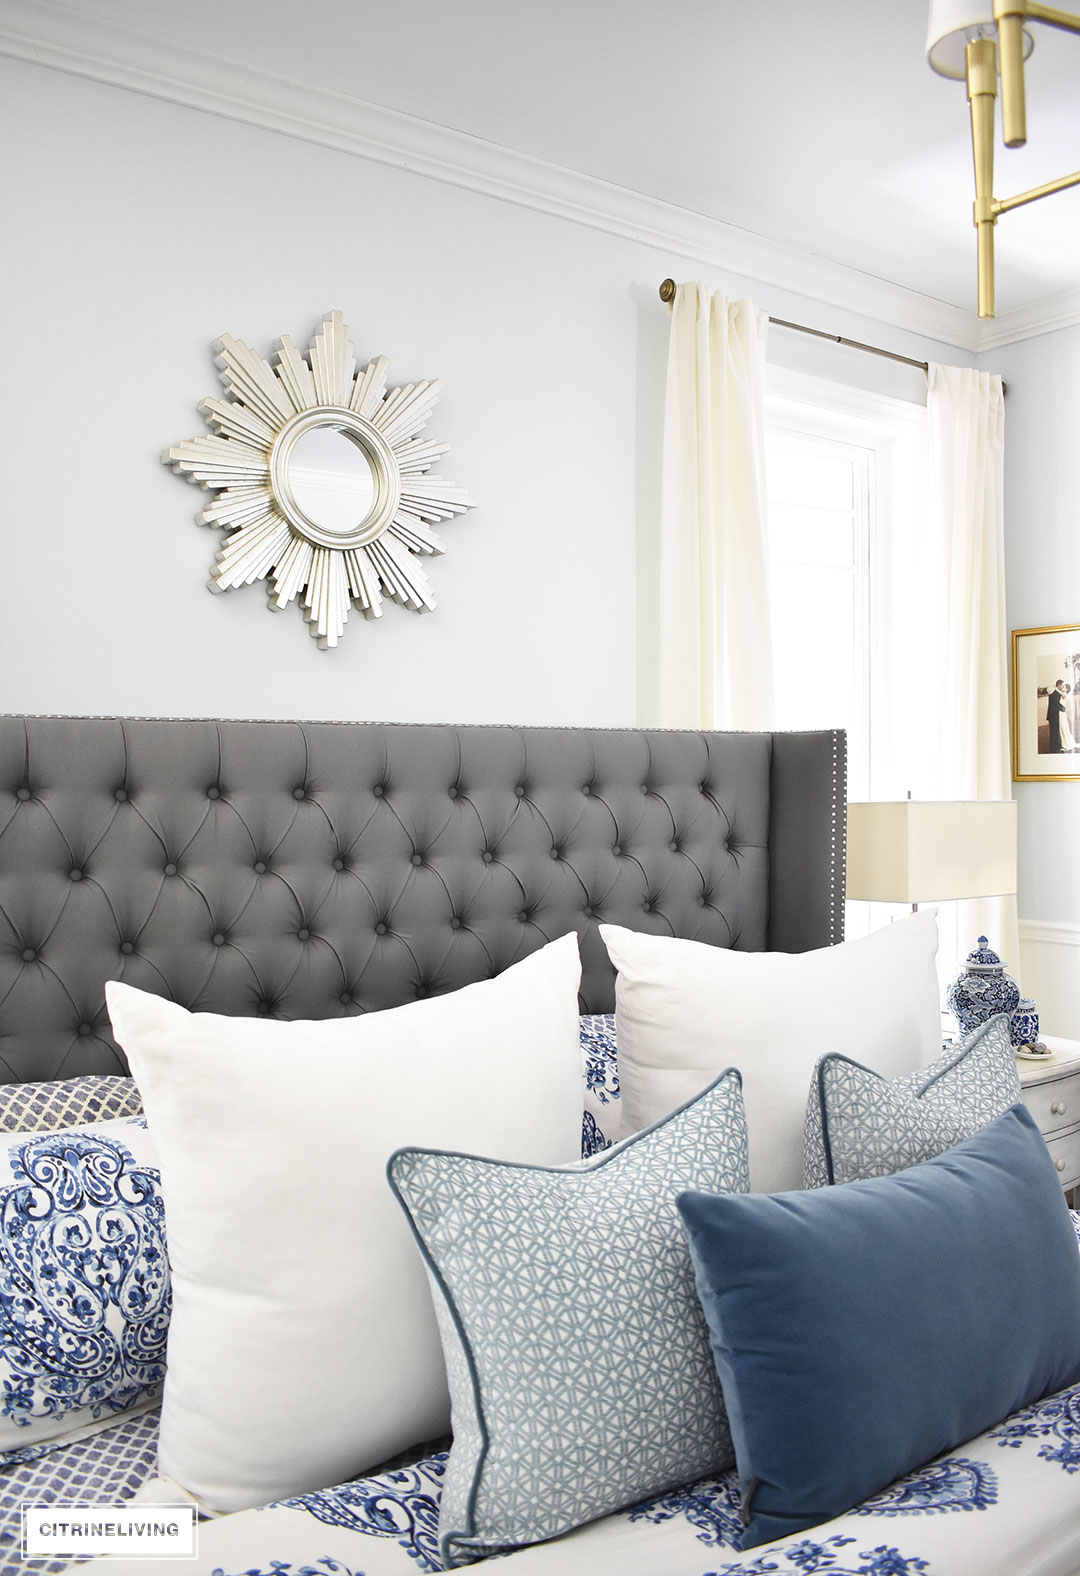 A Sunburst Mirror Is A Chic And Classic Addition To Any Space! This  Beautiful Blue